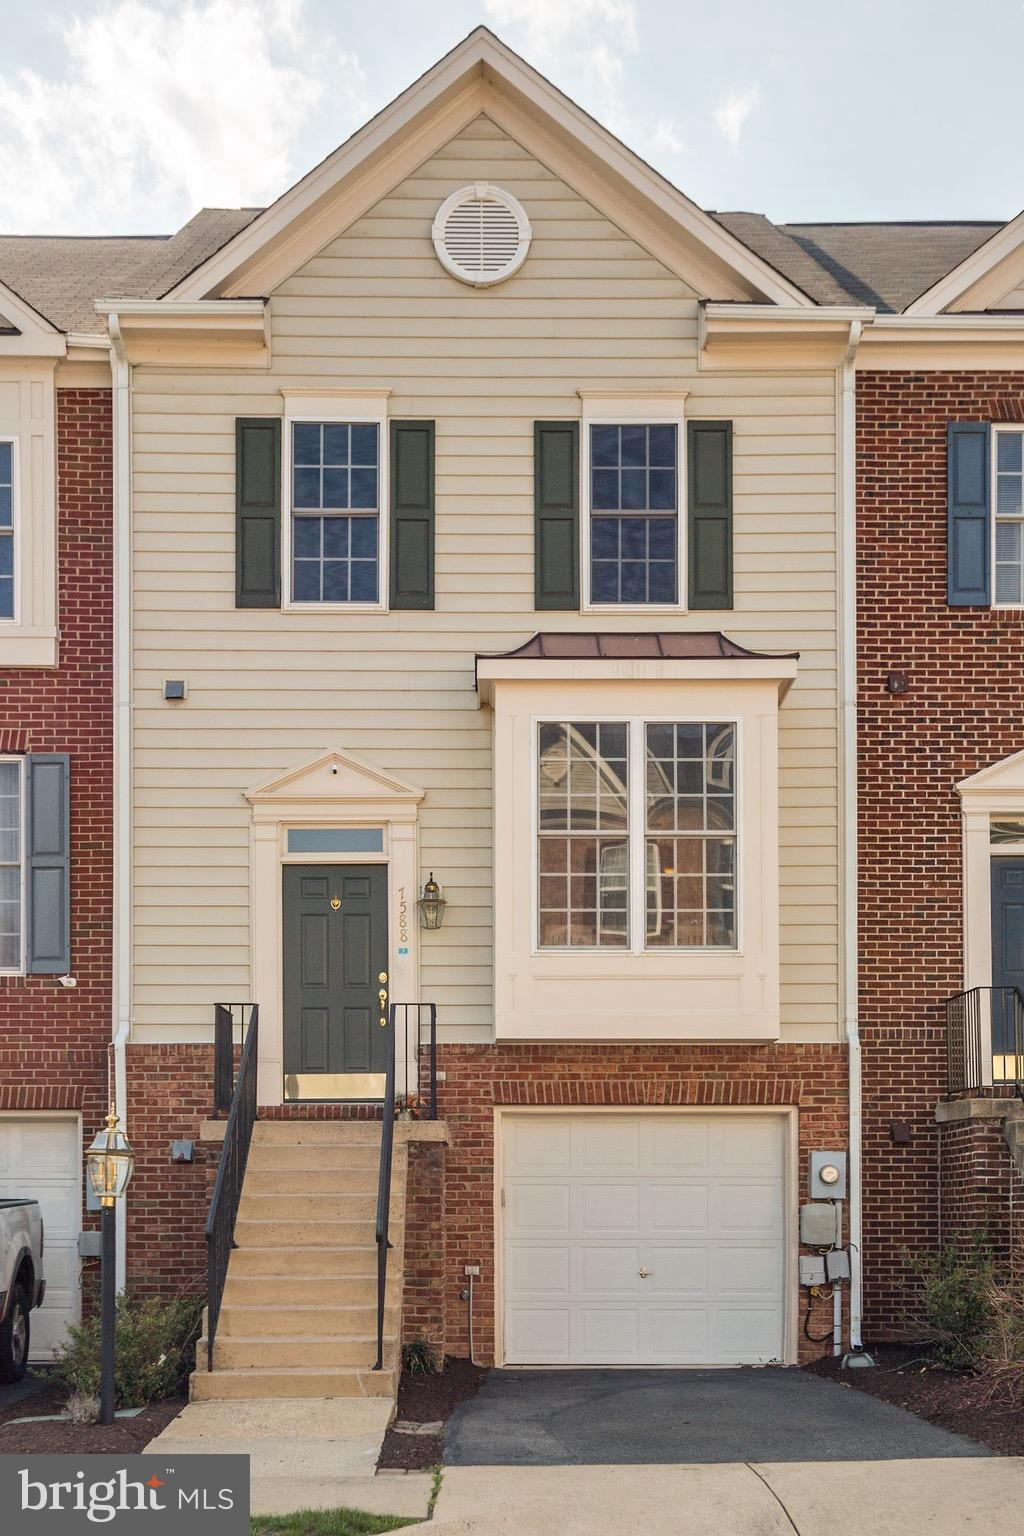 BEAUTIFUL UPDATED TOWNHOUSE: HARDWOOD FLOORS ON THE MAIN LEVEL, NEW CARPET ON THE UPPER LEVEL AND LOWER LEVEL,GORGEOUS GRANITE COUNTERS, SS APPLIANCES, RENOVATED BATHROOMS,WALK IN CLOSET /OWNER'S SUITE, THE DECK /BACKS TO THE TREES, WALK TO THE SHOPPPING PLAZA,NEAR THE HUNTINGTON METRO, FORT BELVOIR , HUNTLEY MEADOWS PARK AND OLD TOWN ALEXANDRIA. IN SOUGHT AFTER HUNTYLEY MEADOWS COMMUNITY!